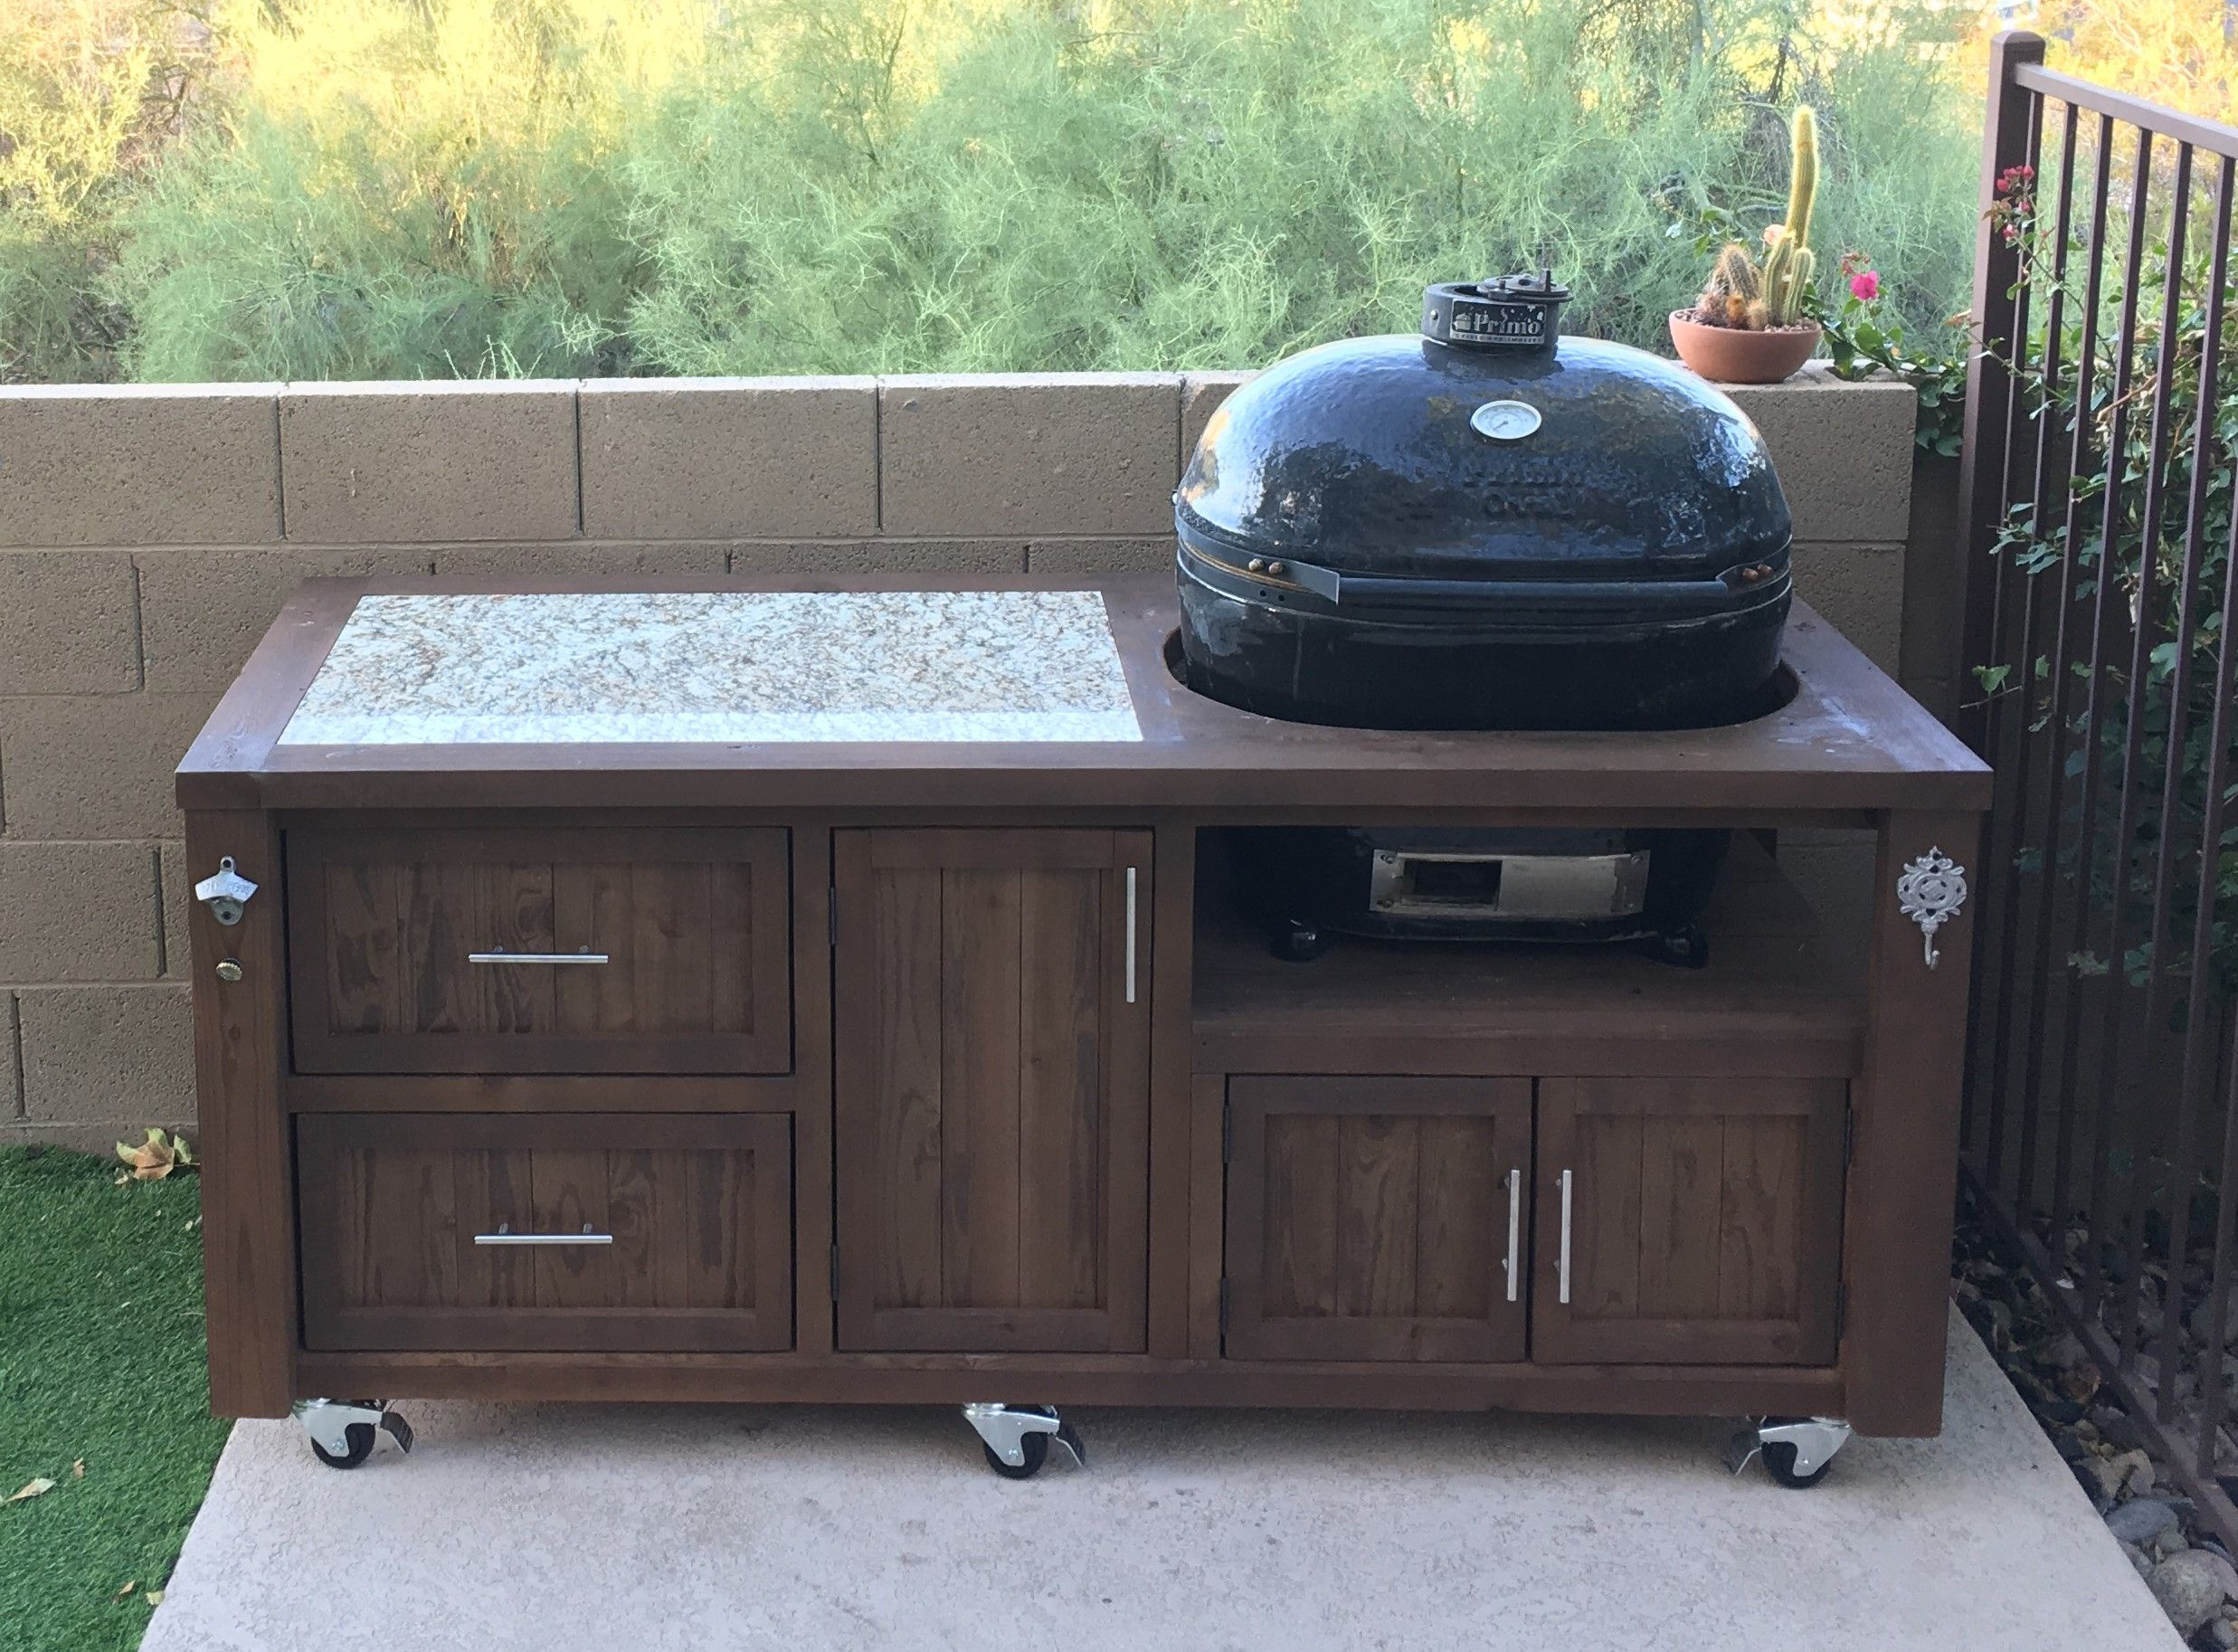 20 Off Kamado Joe Grills With Purchase Of A Cabinet In